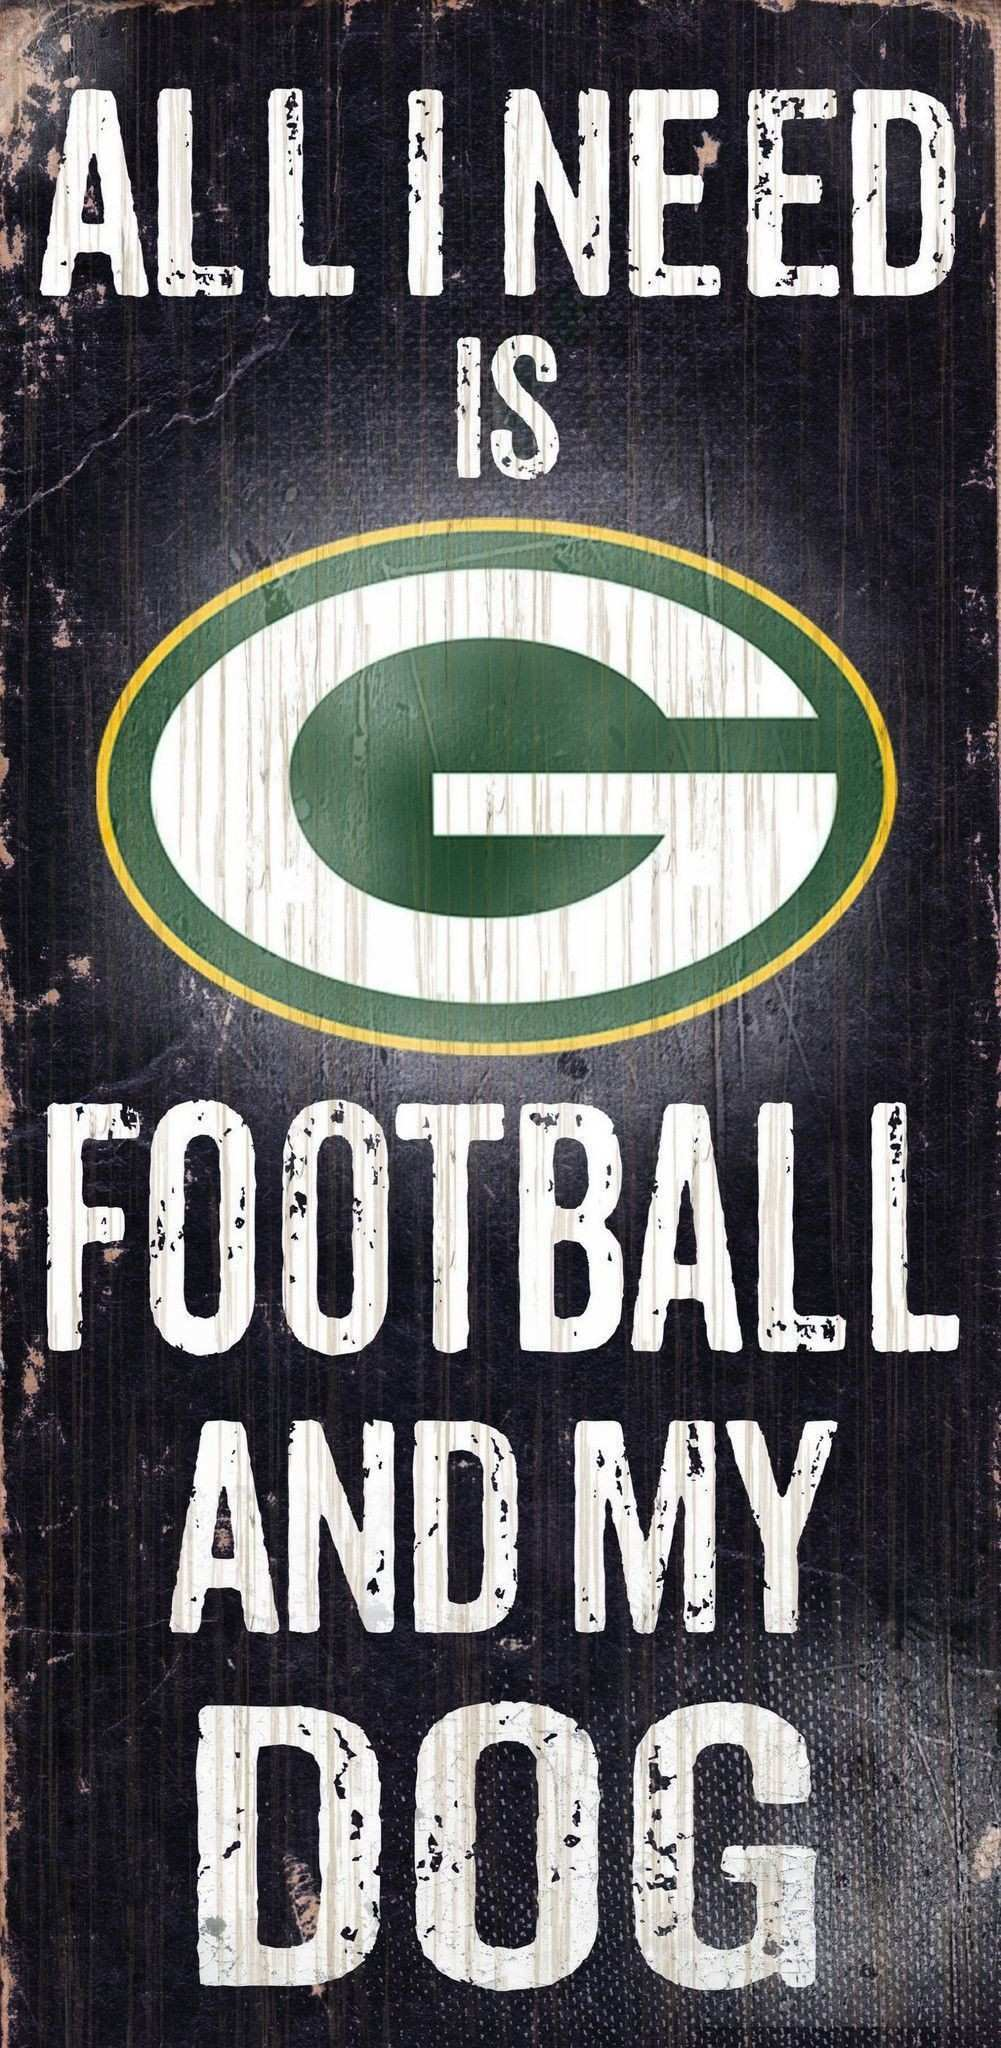 Ficially Licensed Green Bay Football and Dog Sign Scheme Packers